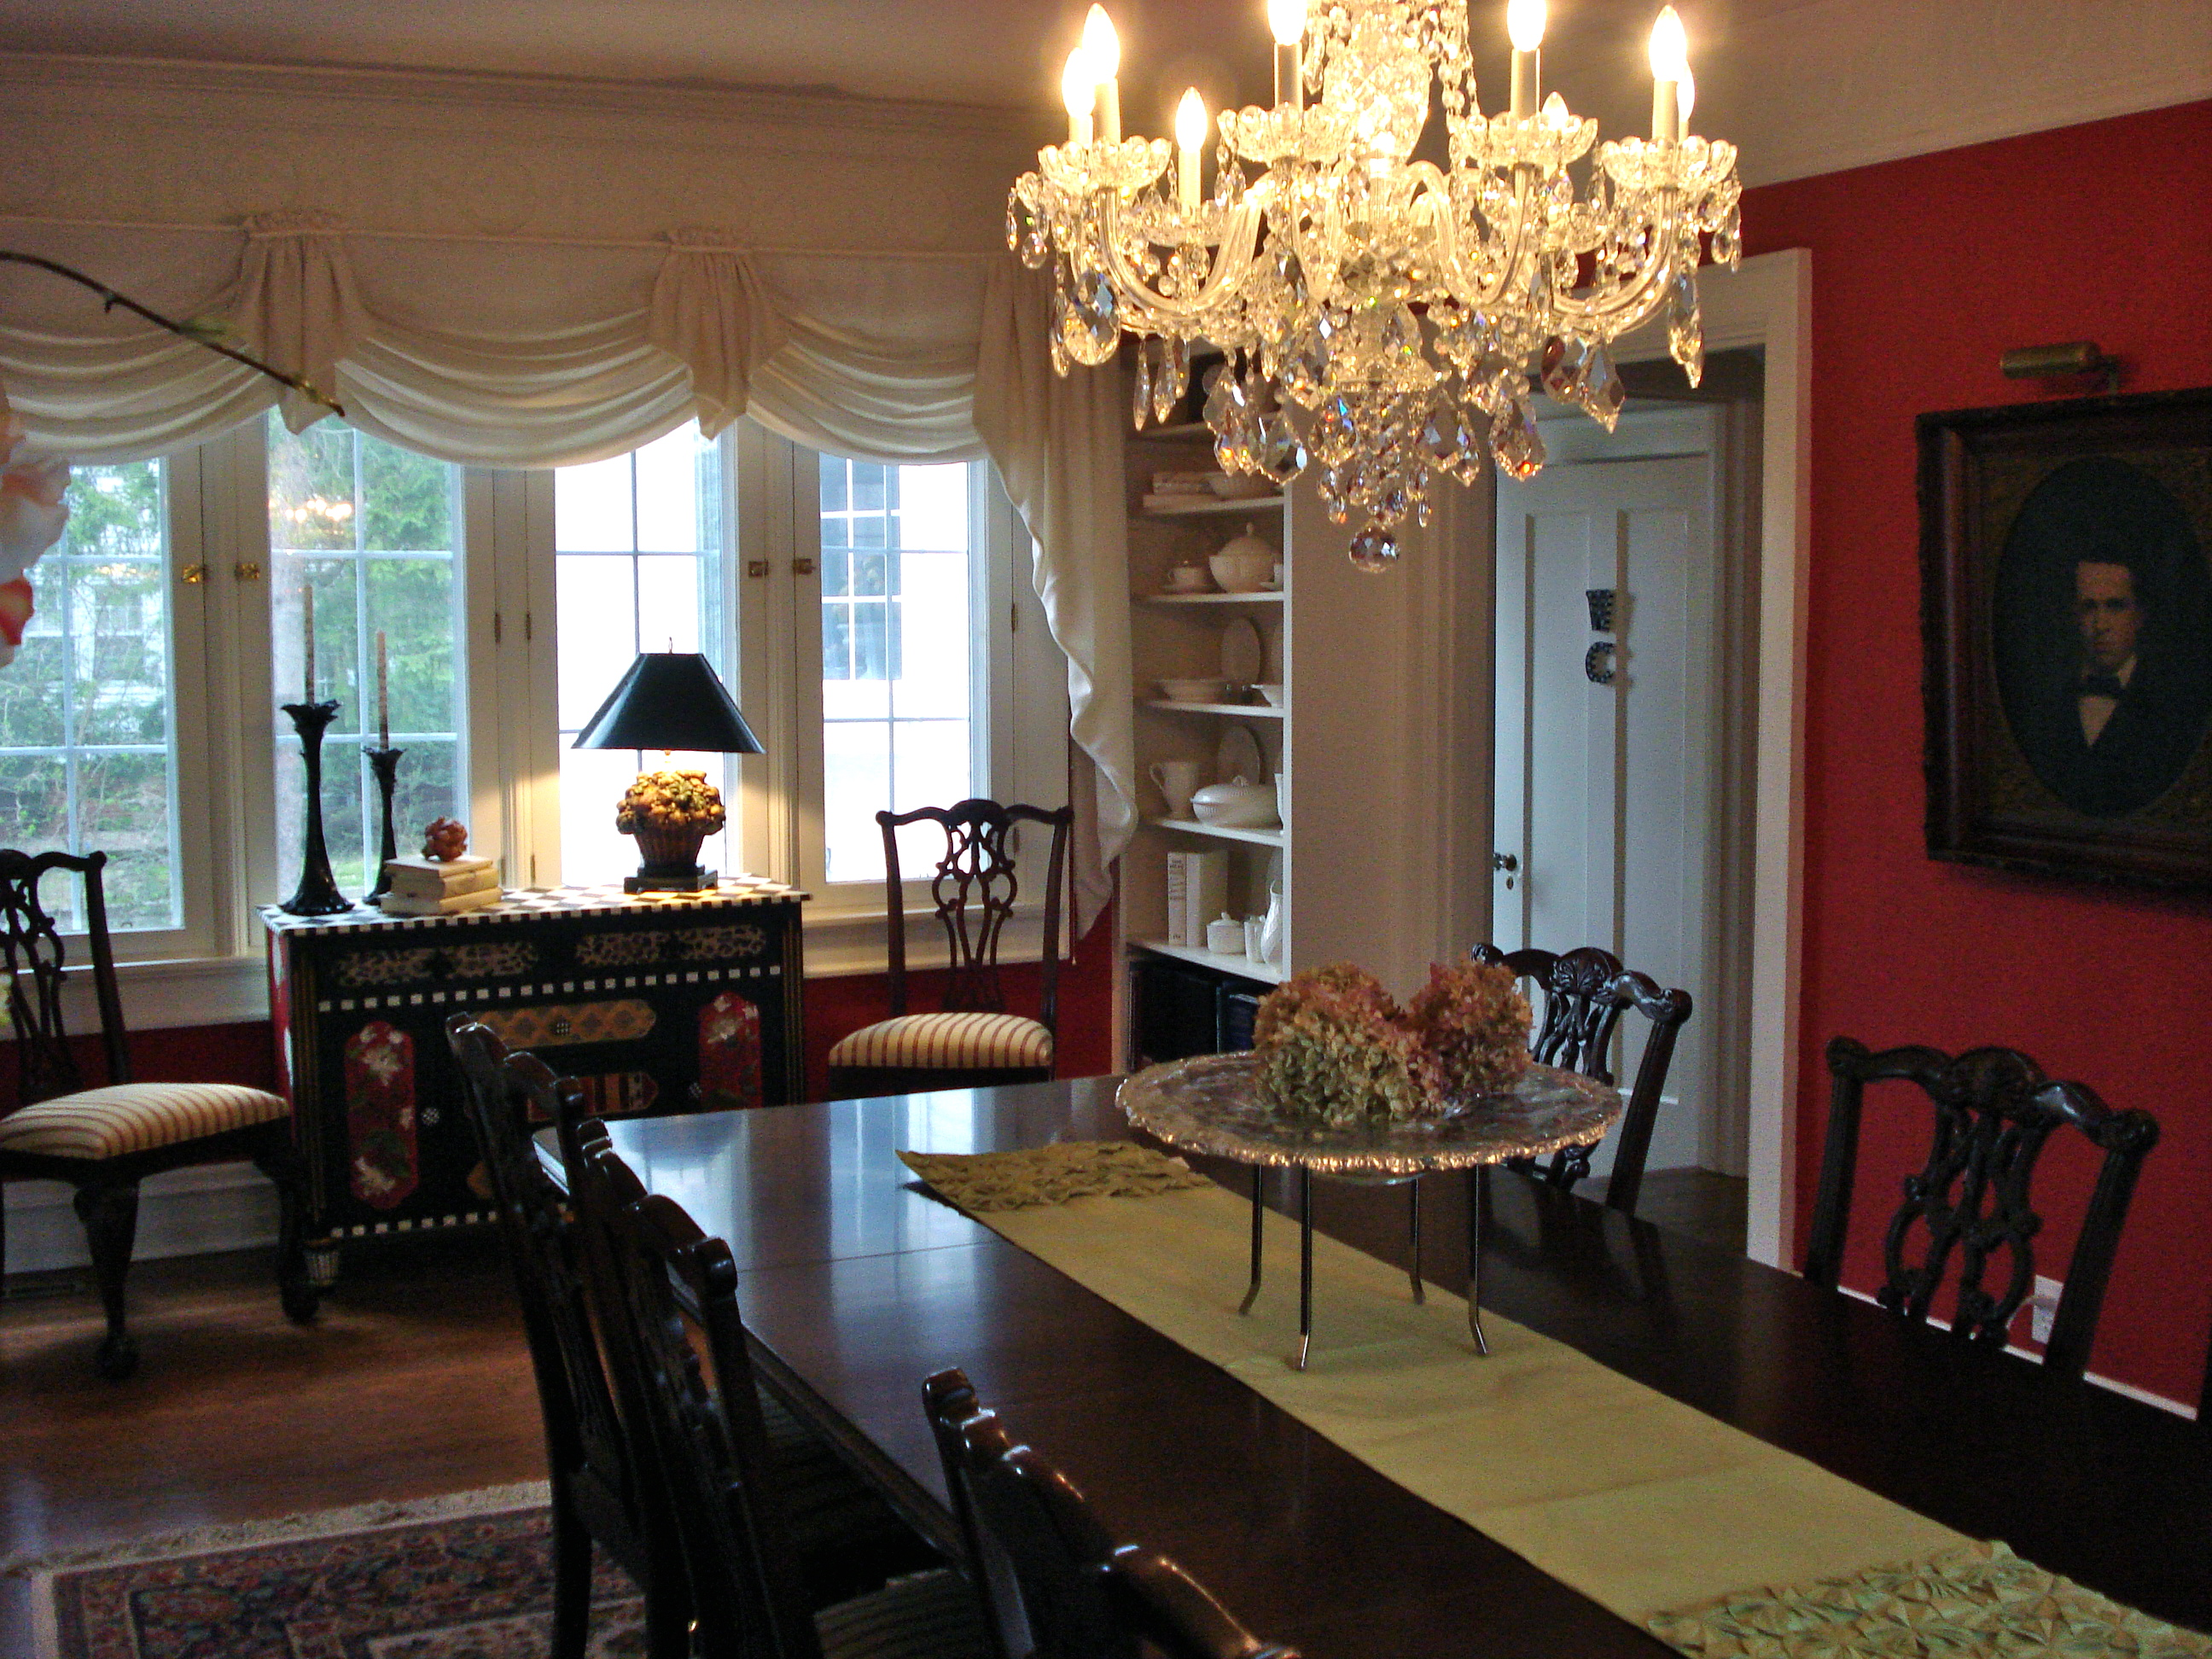 Are Red Dining Rooms So 2008? - Becolorful